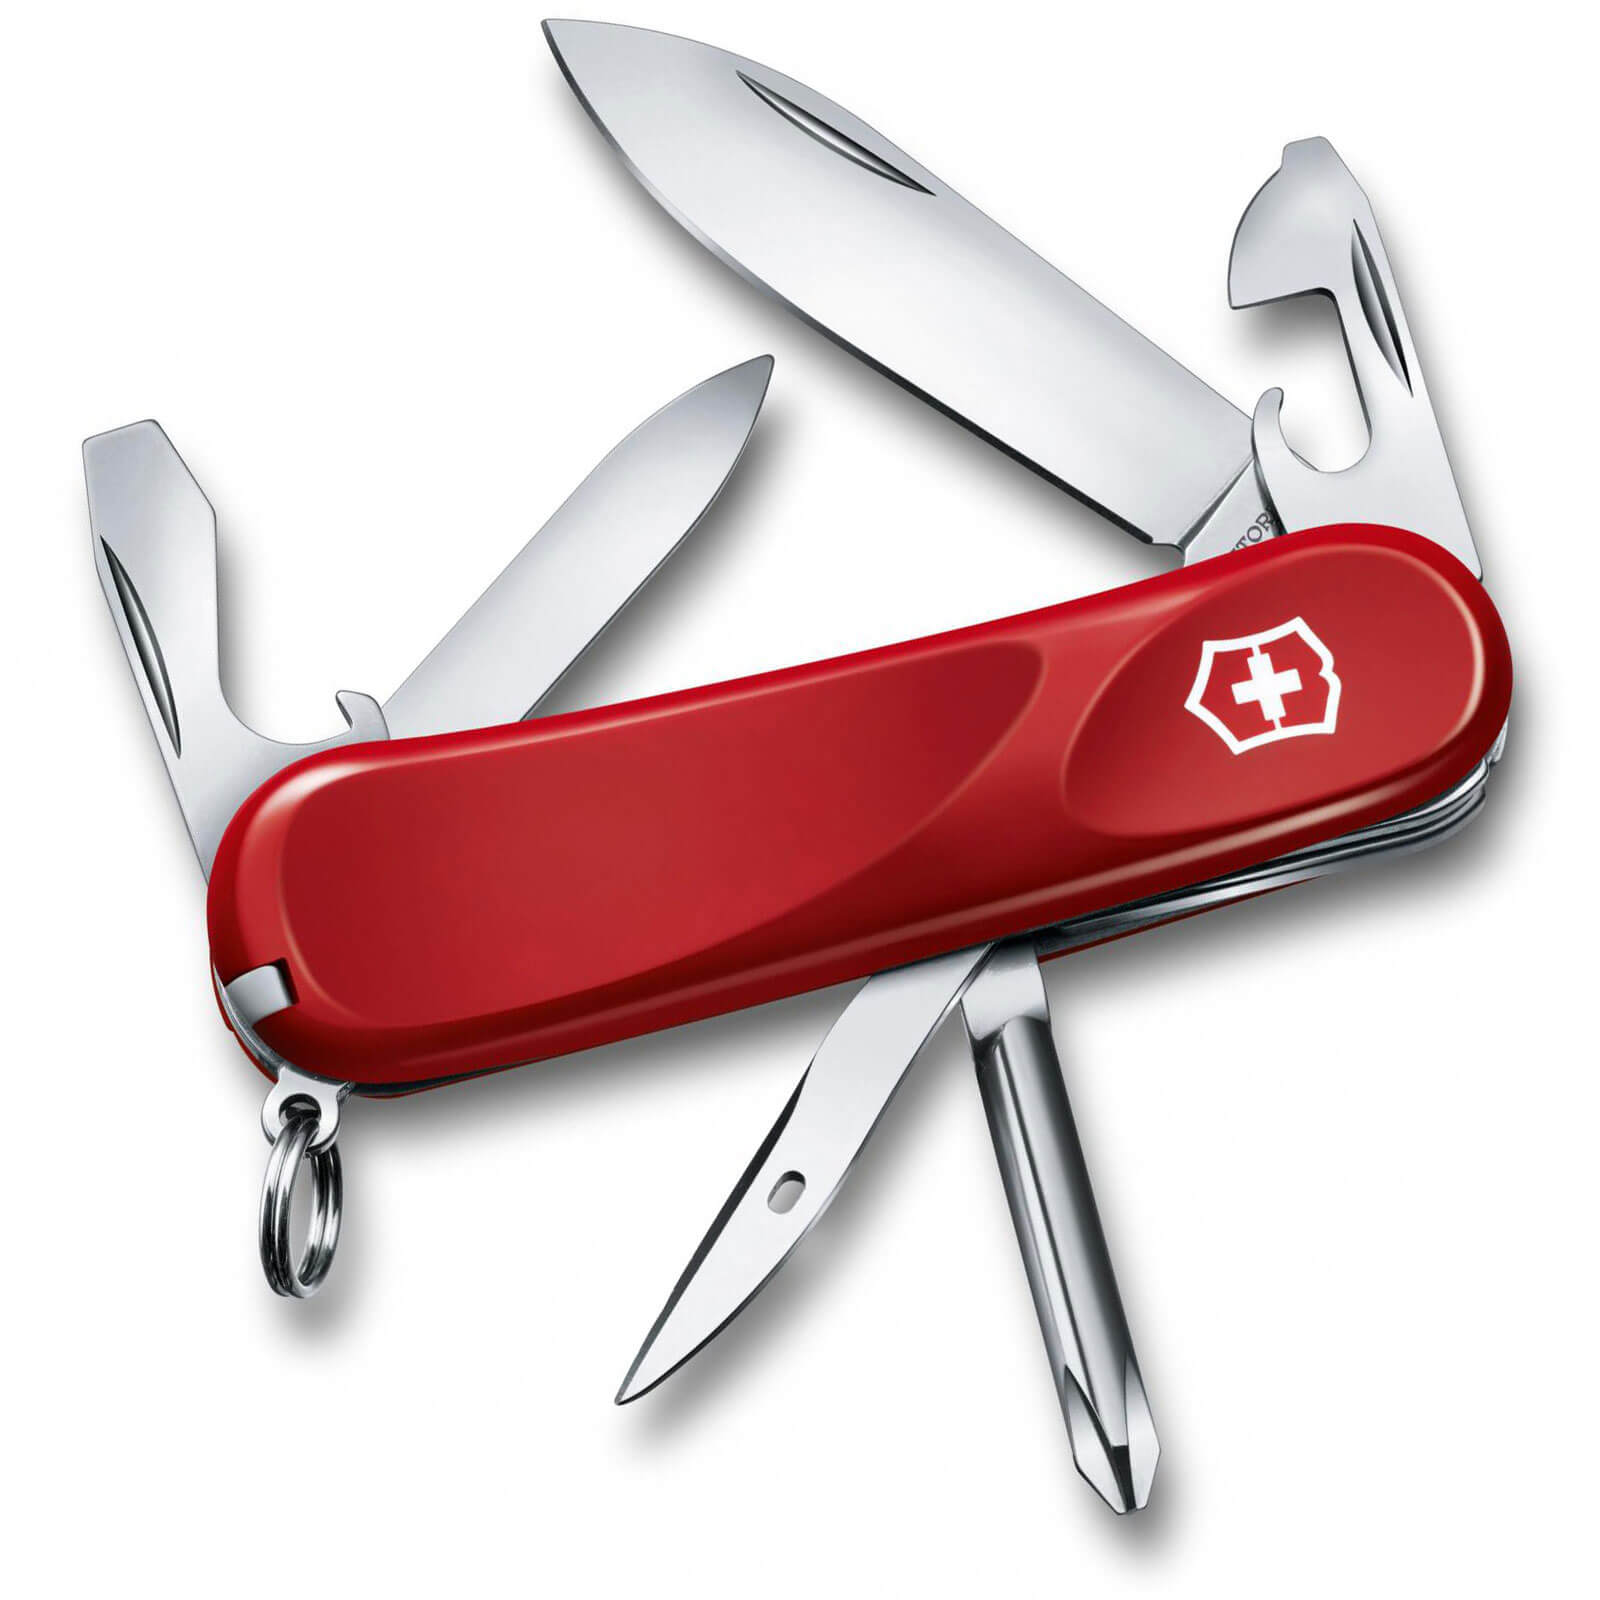 Image of Victorinox Evolution 11 Swiss Army Knife Red